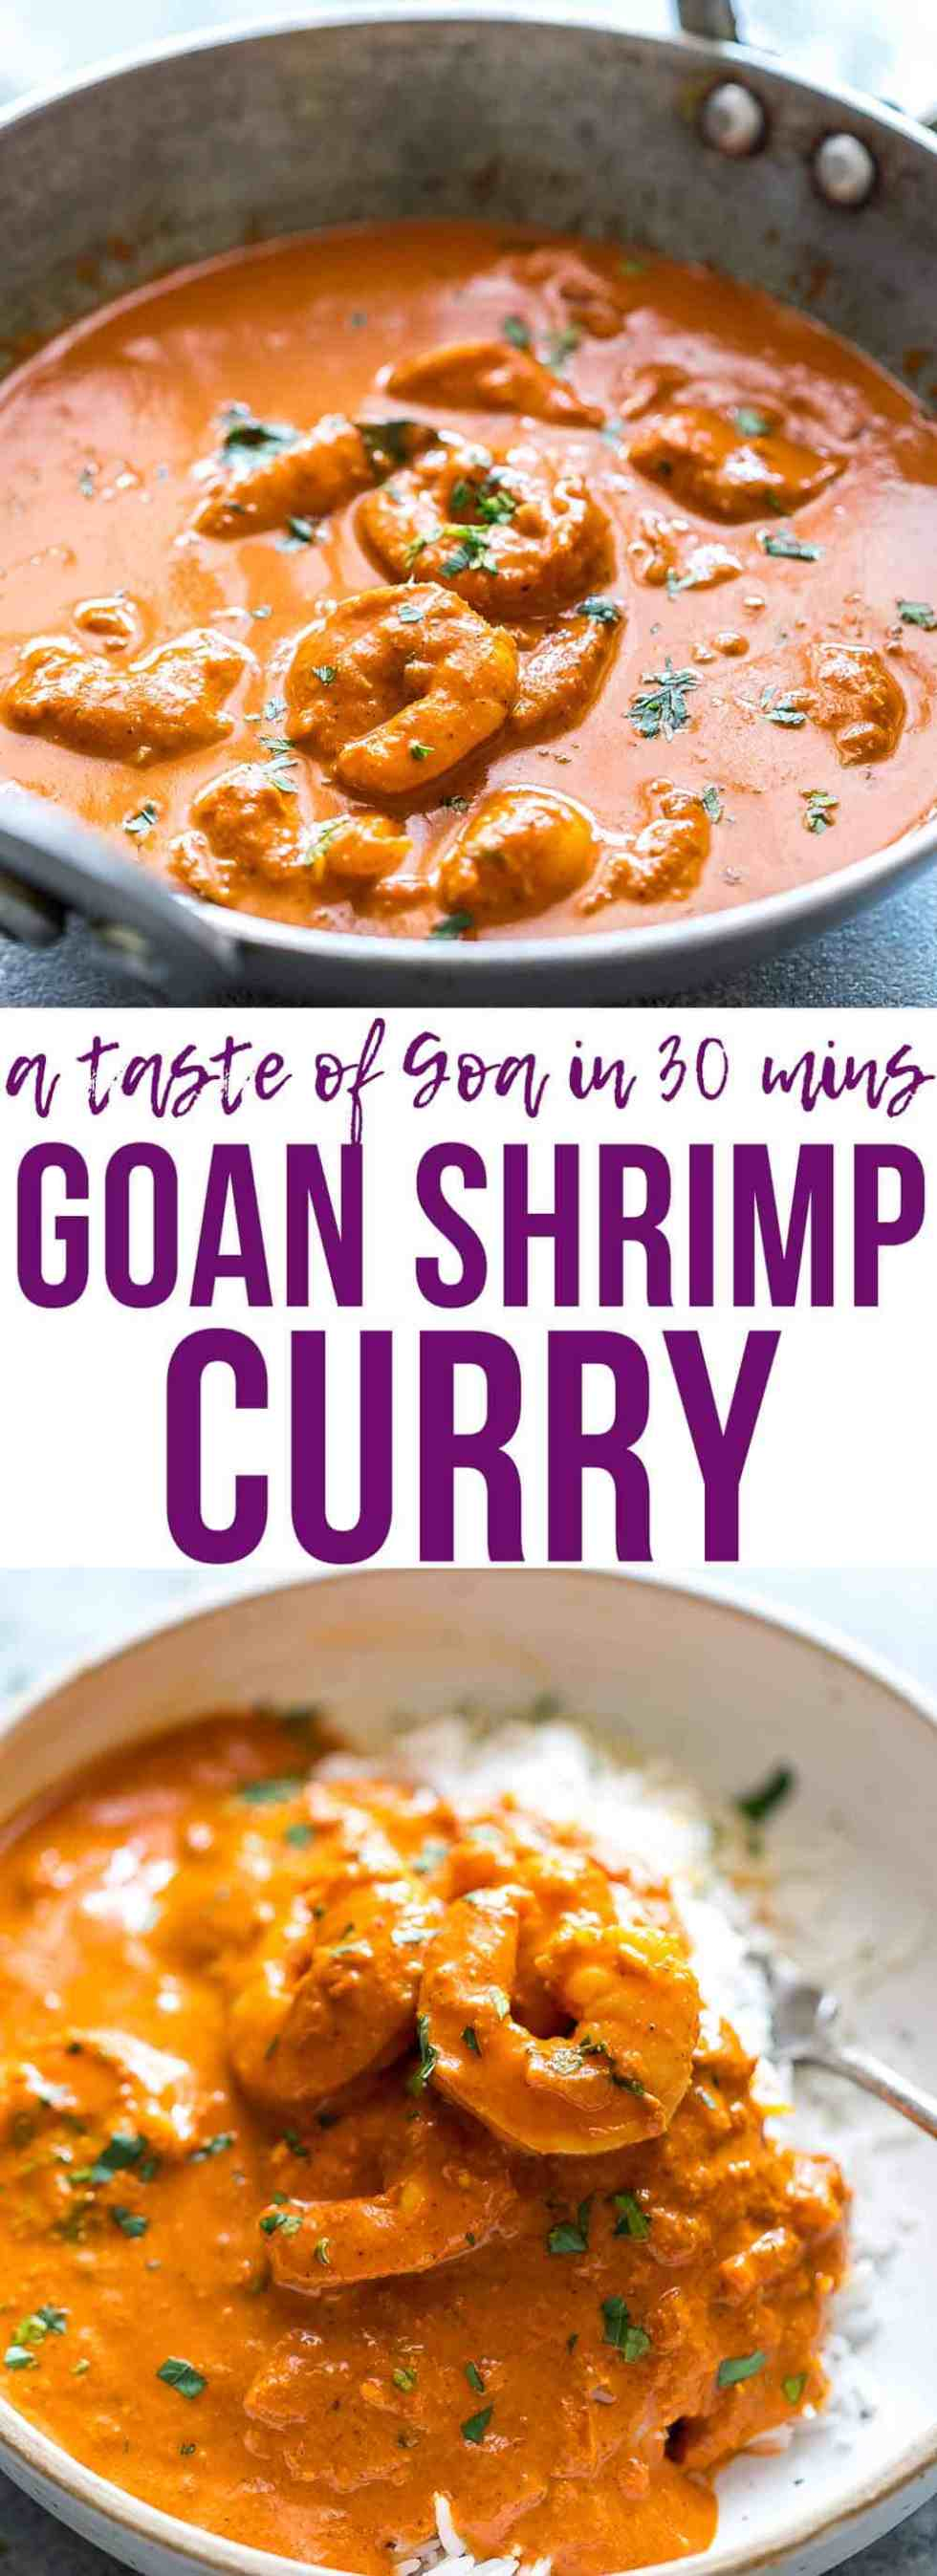 Goan Prawn Curry or Shrimp Curry with Coconut is a spicy, sour Indian curry that comes from Goa and is also called Ambot Tik. Ready in 30 minutes it's a simple Indian curry that anyone can make! Perfect for fast, weeknight dinner. Gluten Free.